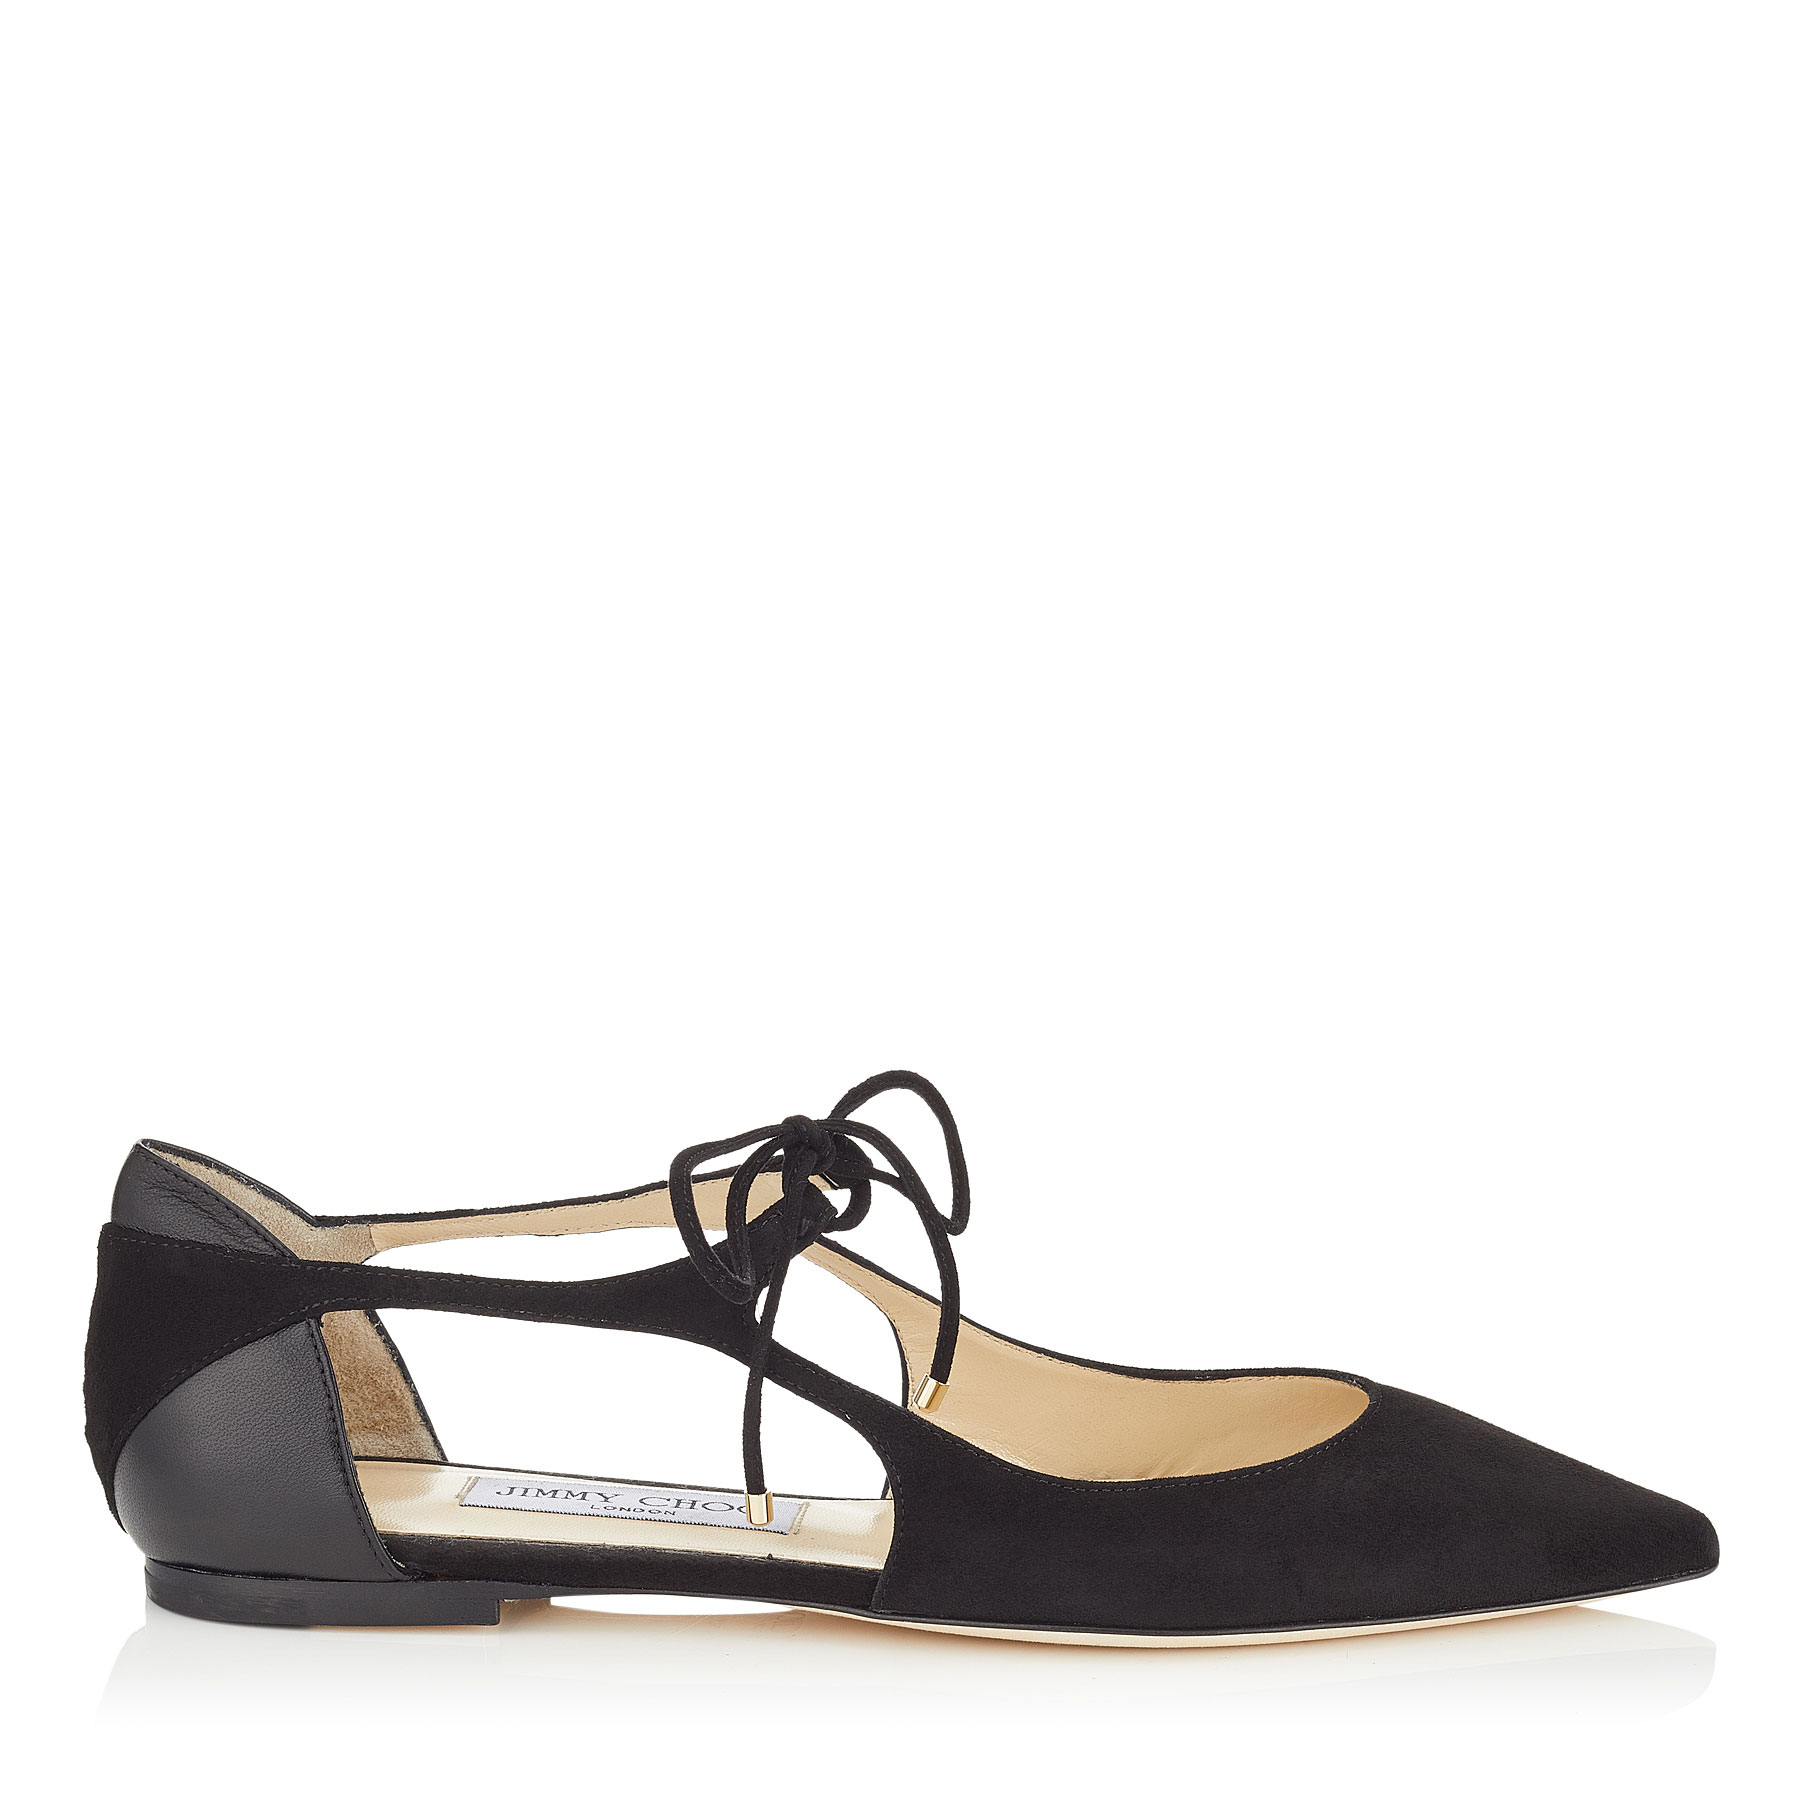 VANESSA FLAT Black Suede and Nappa Leather Pointy Toe Flats by Jimmy Choo